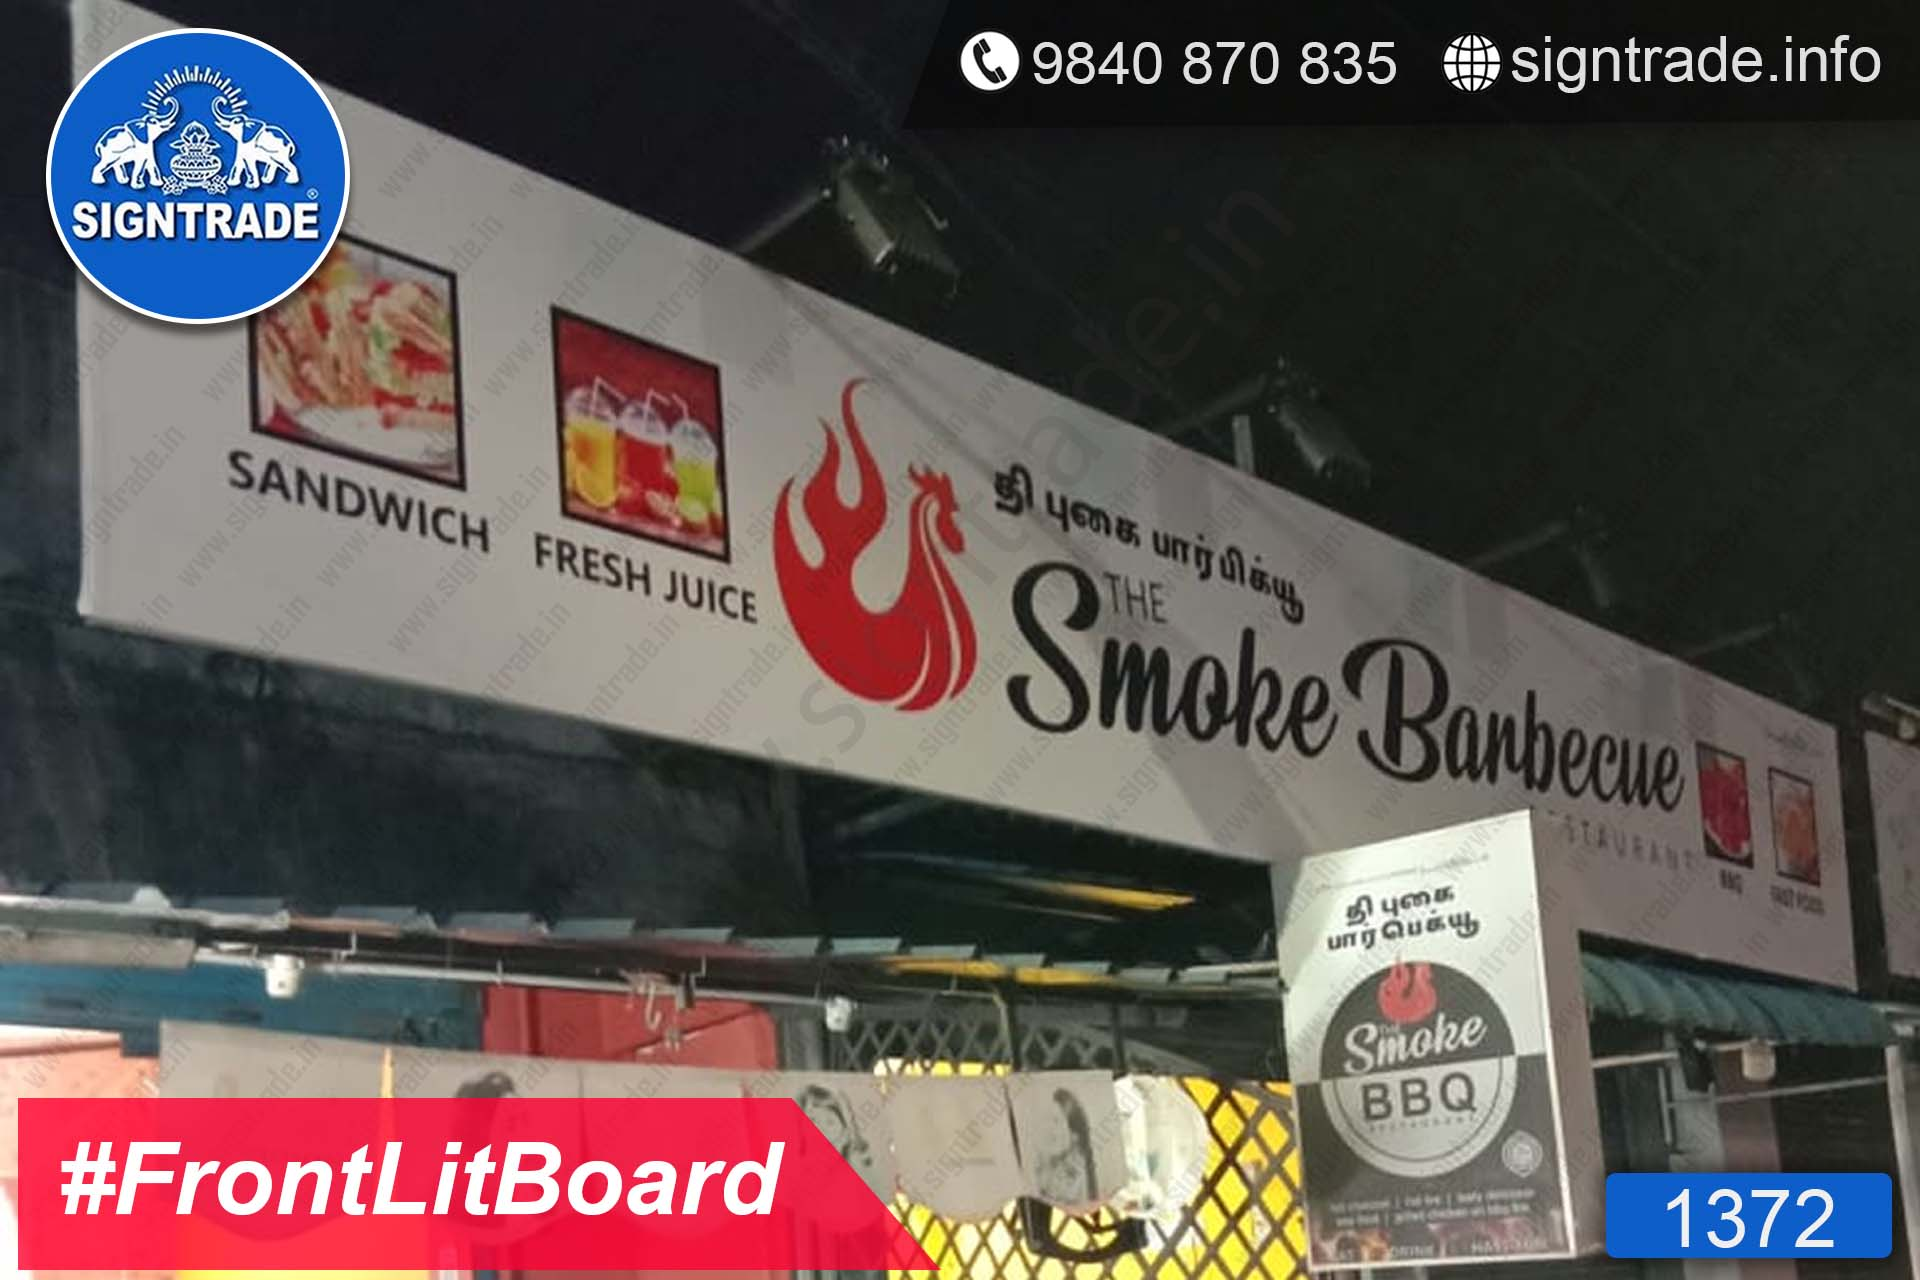 The Smoke Barbeque - Chennai - SIGNTRADE - Frontlit Flex Board - Digital Printing Services in Chennai